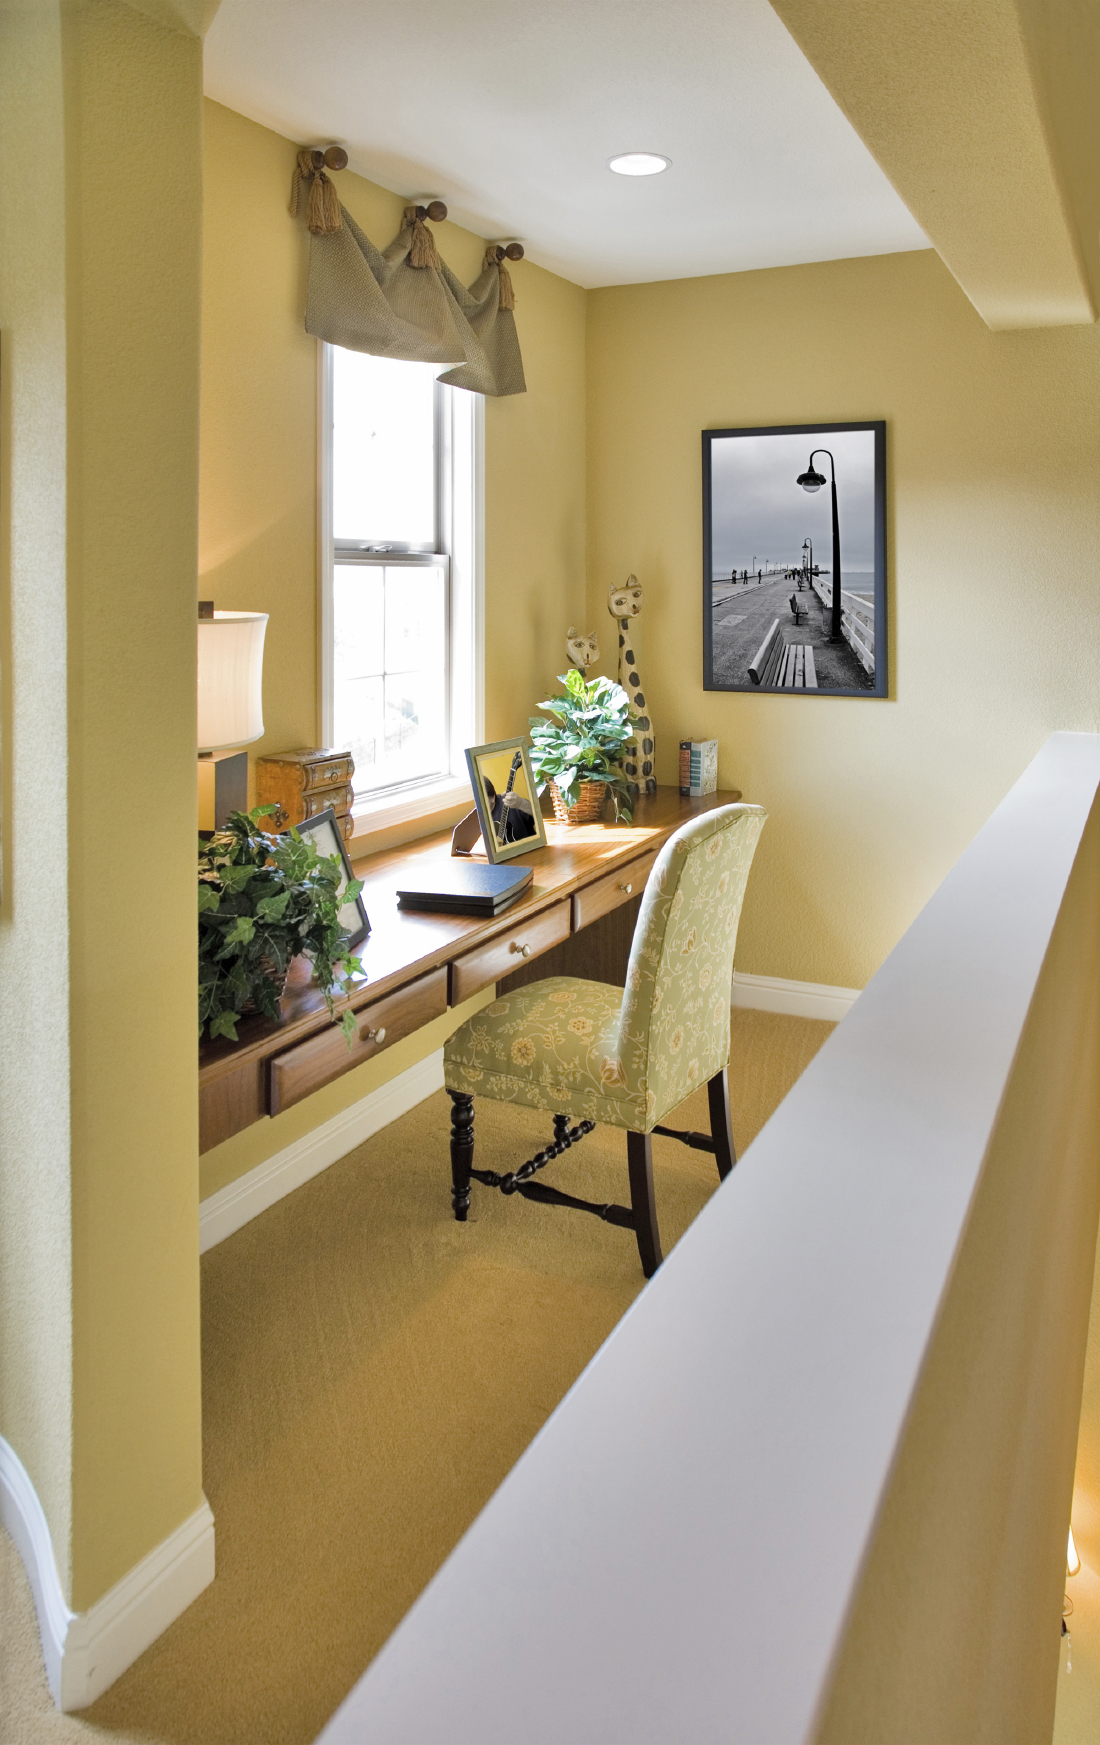 The soft yellow hues of this study brighten and make the cozy space feel larger, with a slim writing desk in dark wood standing below a single white framed window. The room stands on a loft space, with low wall defining the edge.